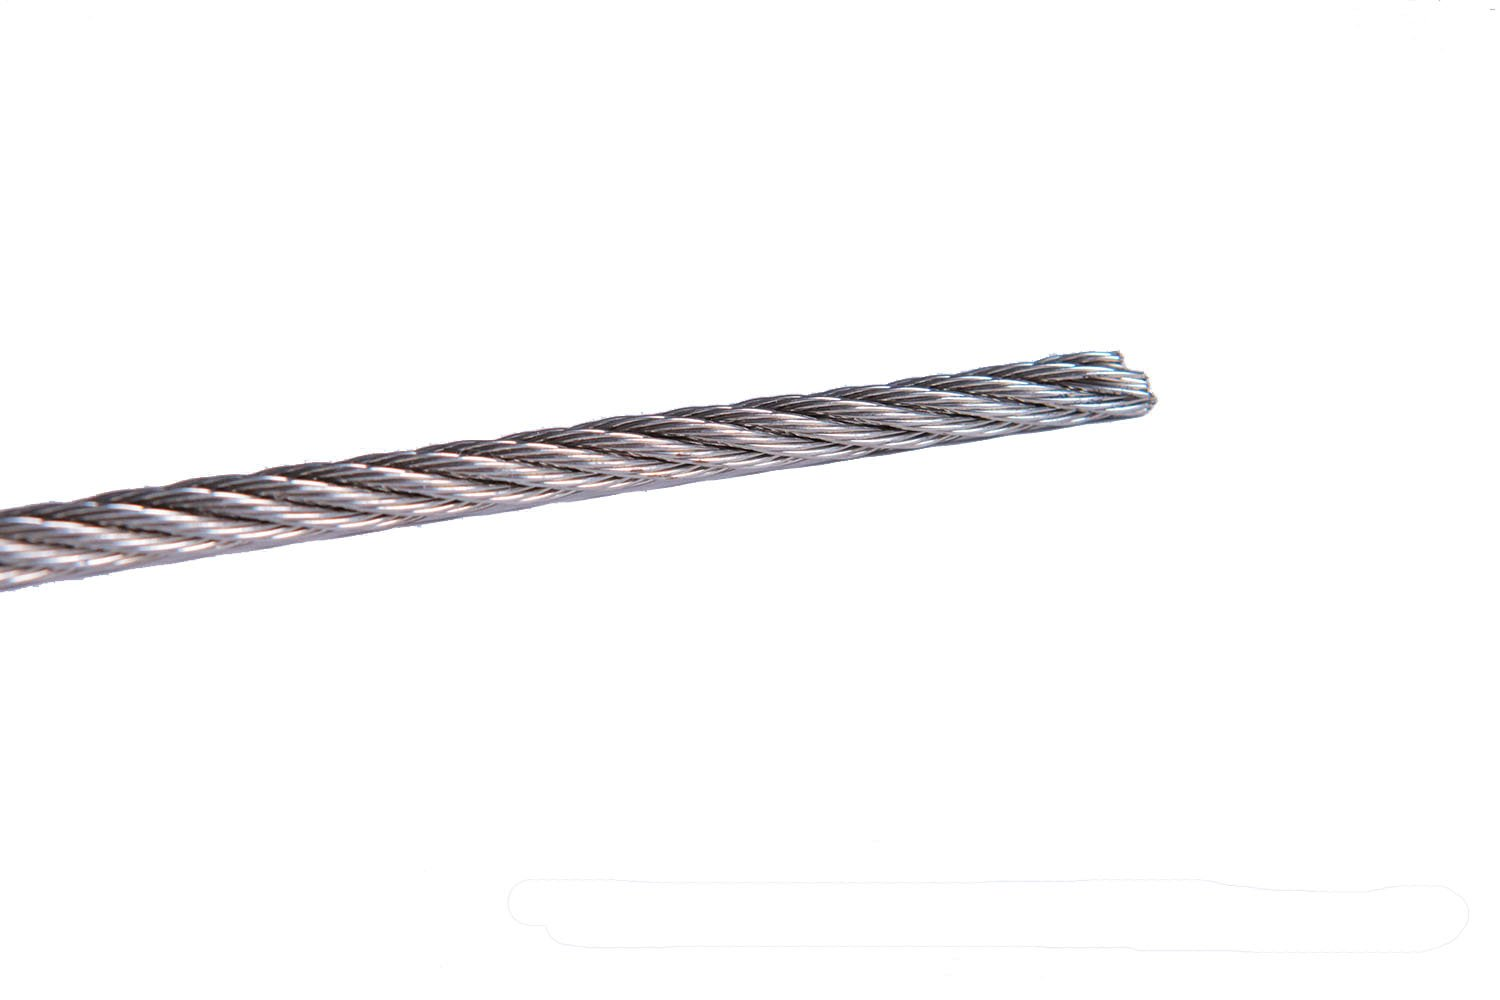 5/32'' 7x7 Stainless Steel T316 Cable Railing Cable with Medium Flexibility (250-Foot Spool)